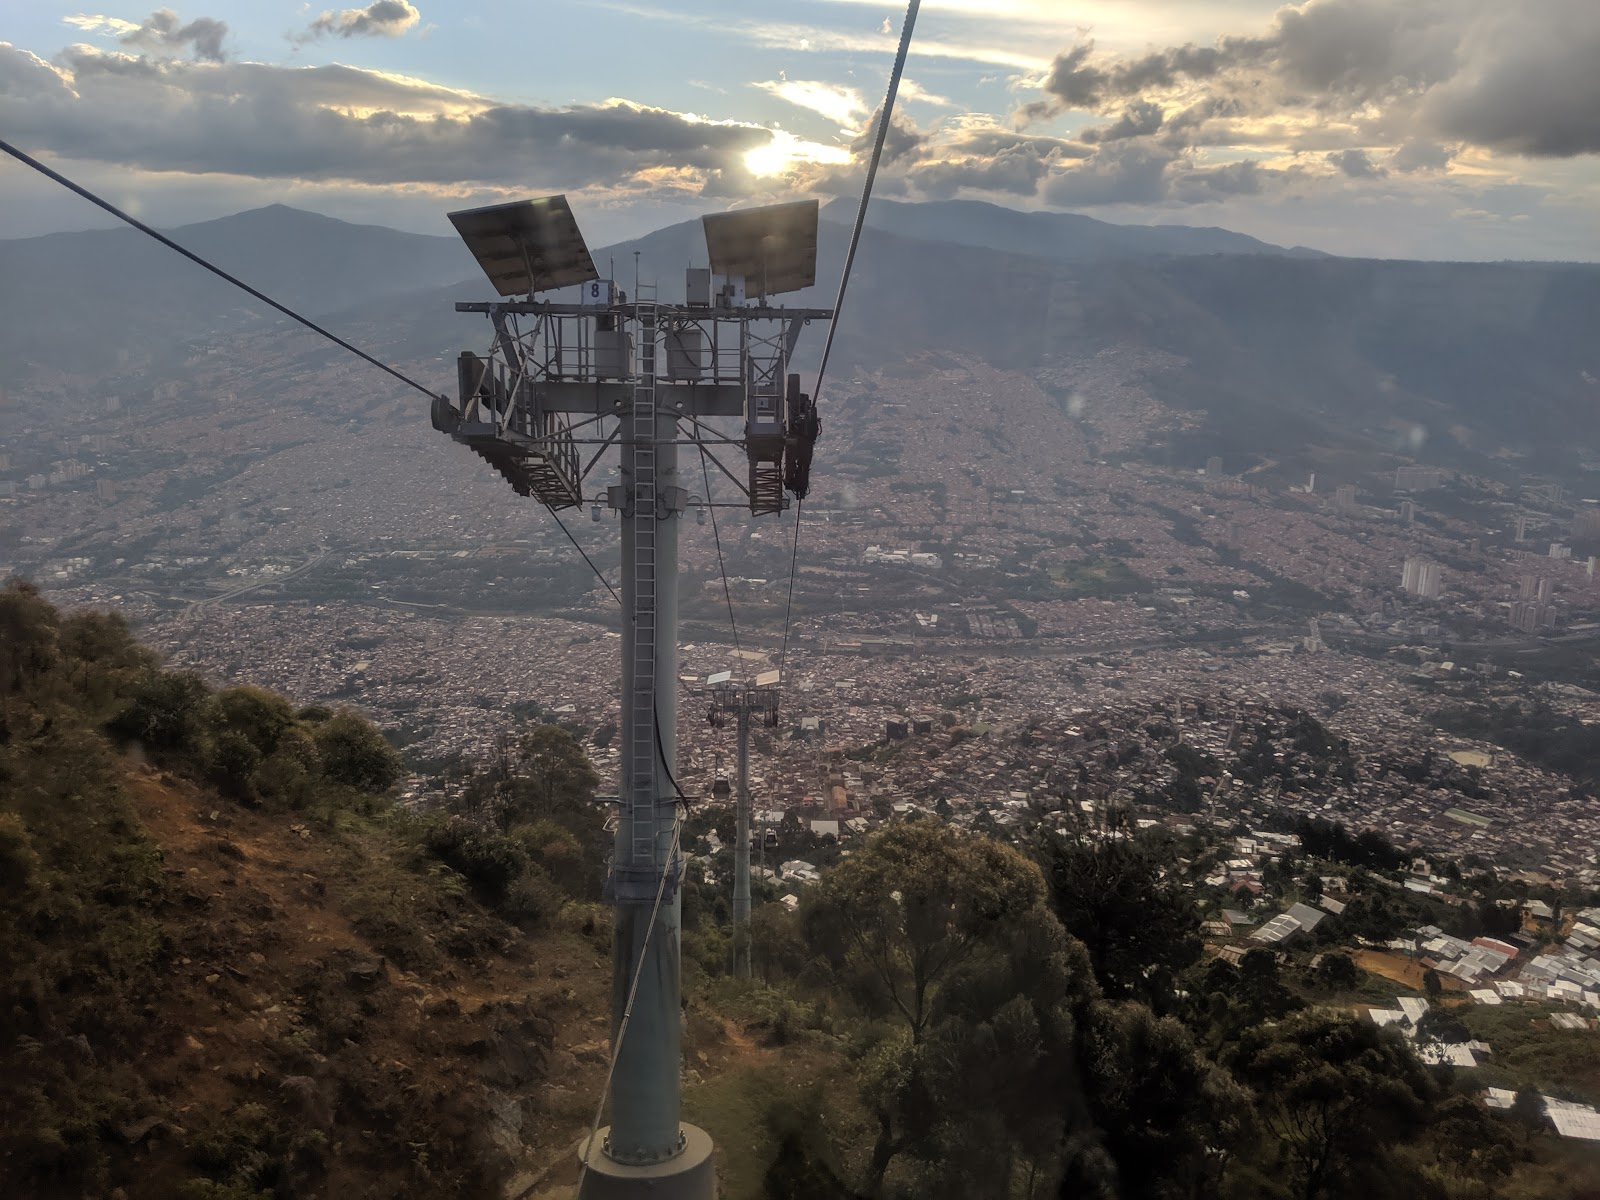 Views from the MetroCable in Medellin, Colombia.